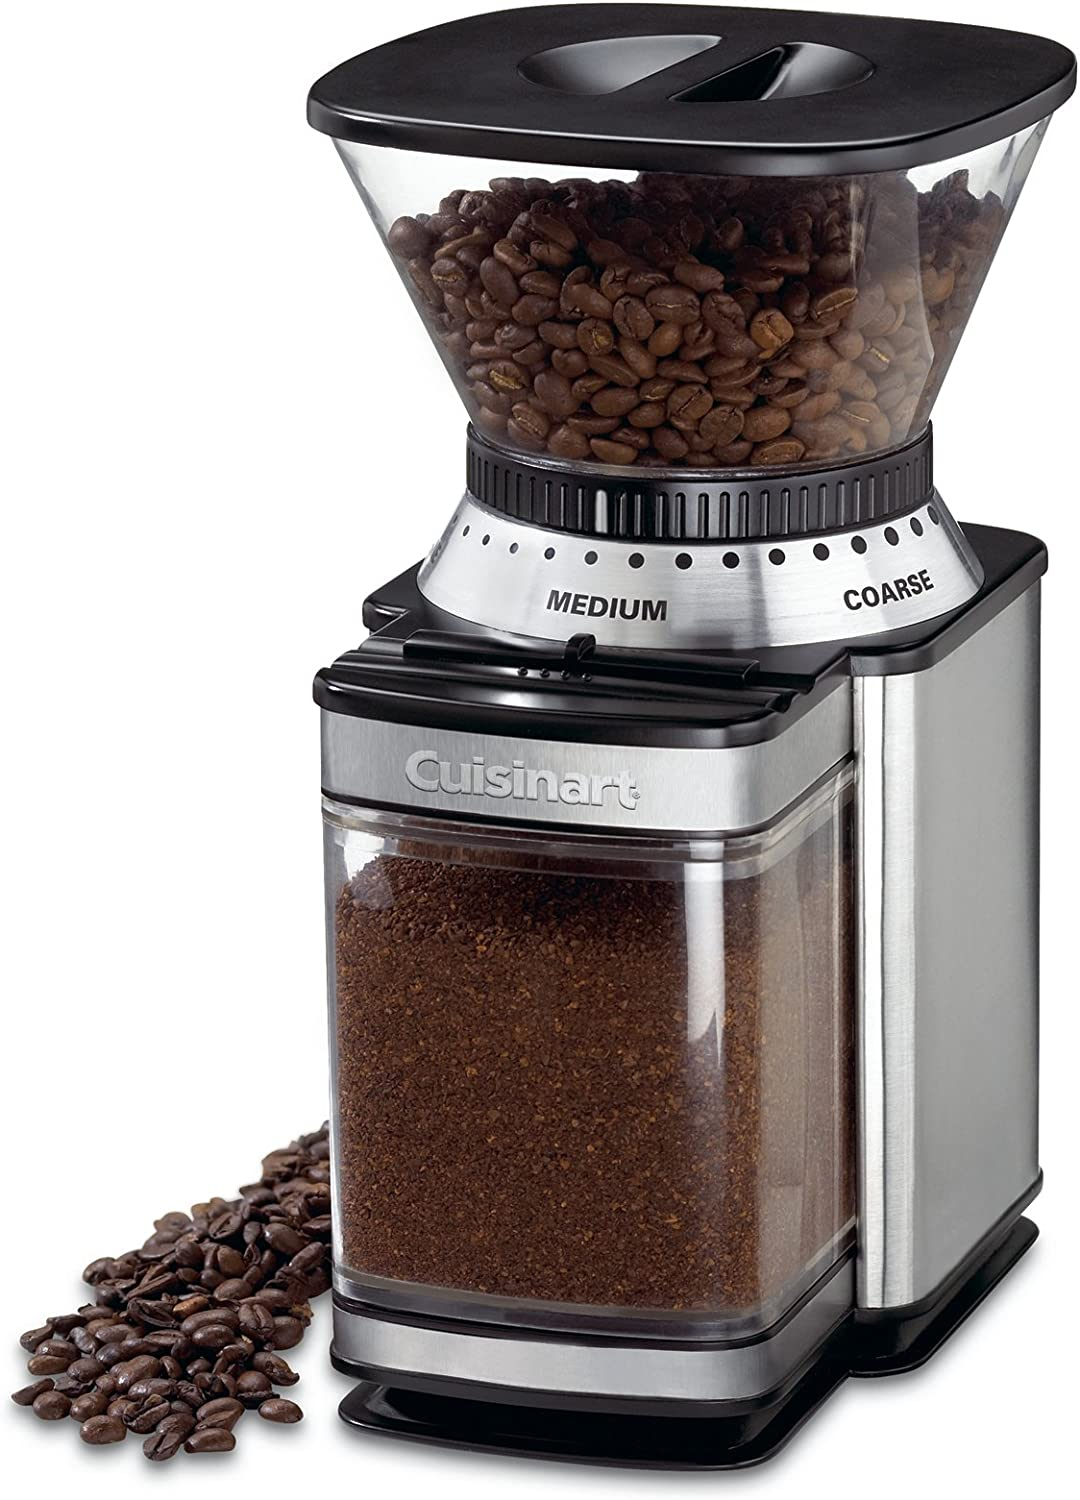 Cuisinart DBM-8 Supreme Grind Automatic Burr Coffee Mill Review